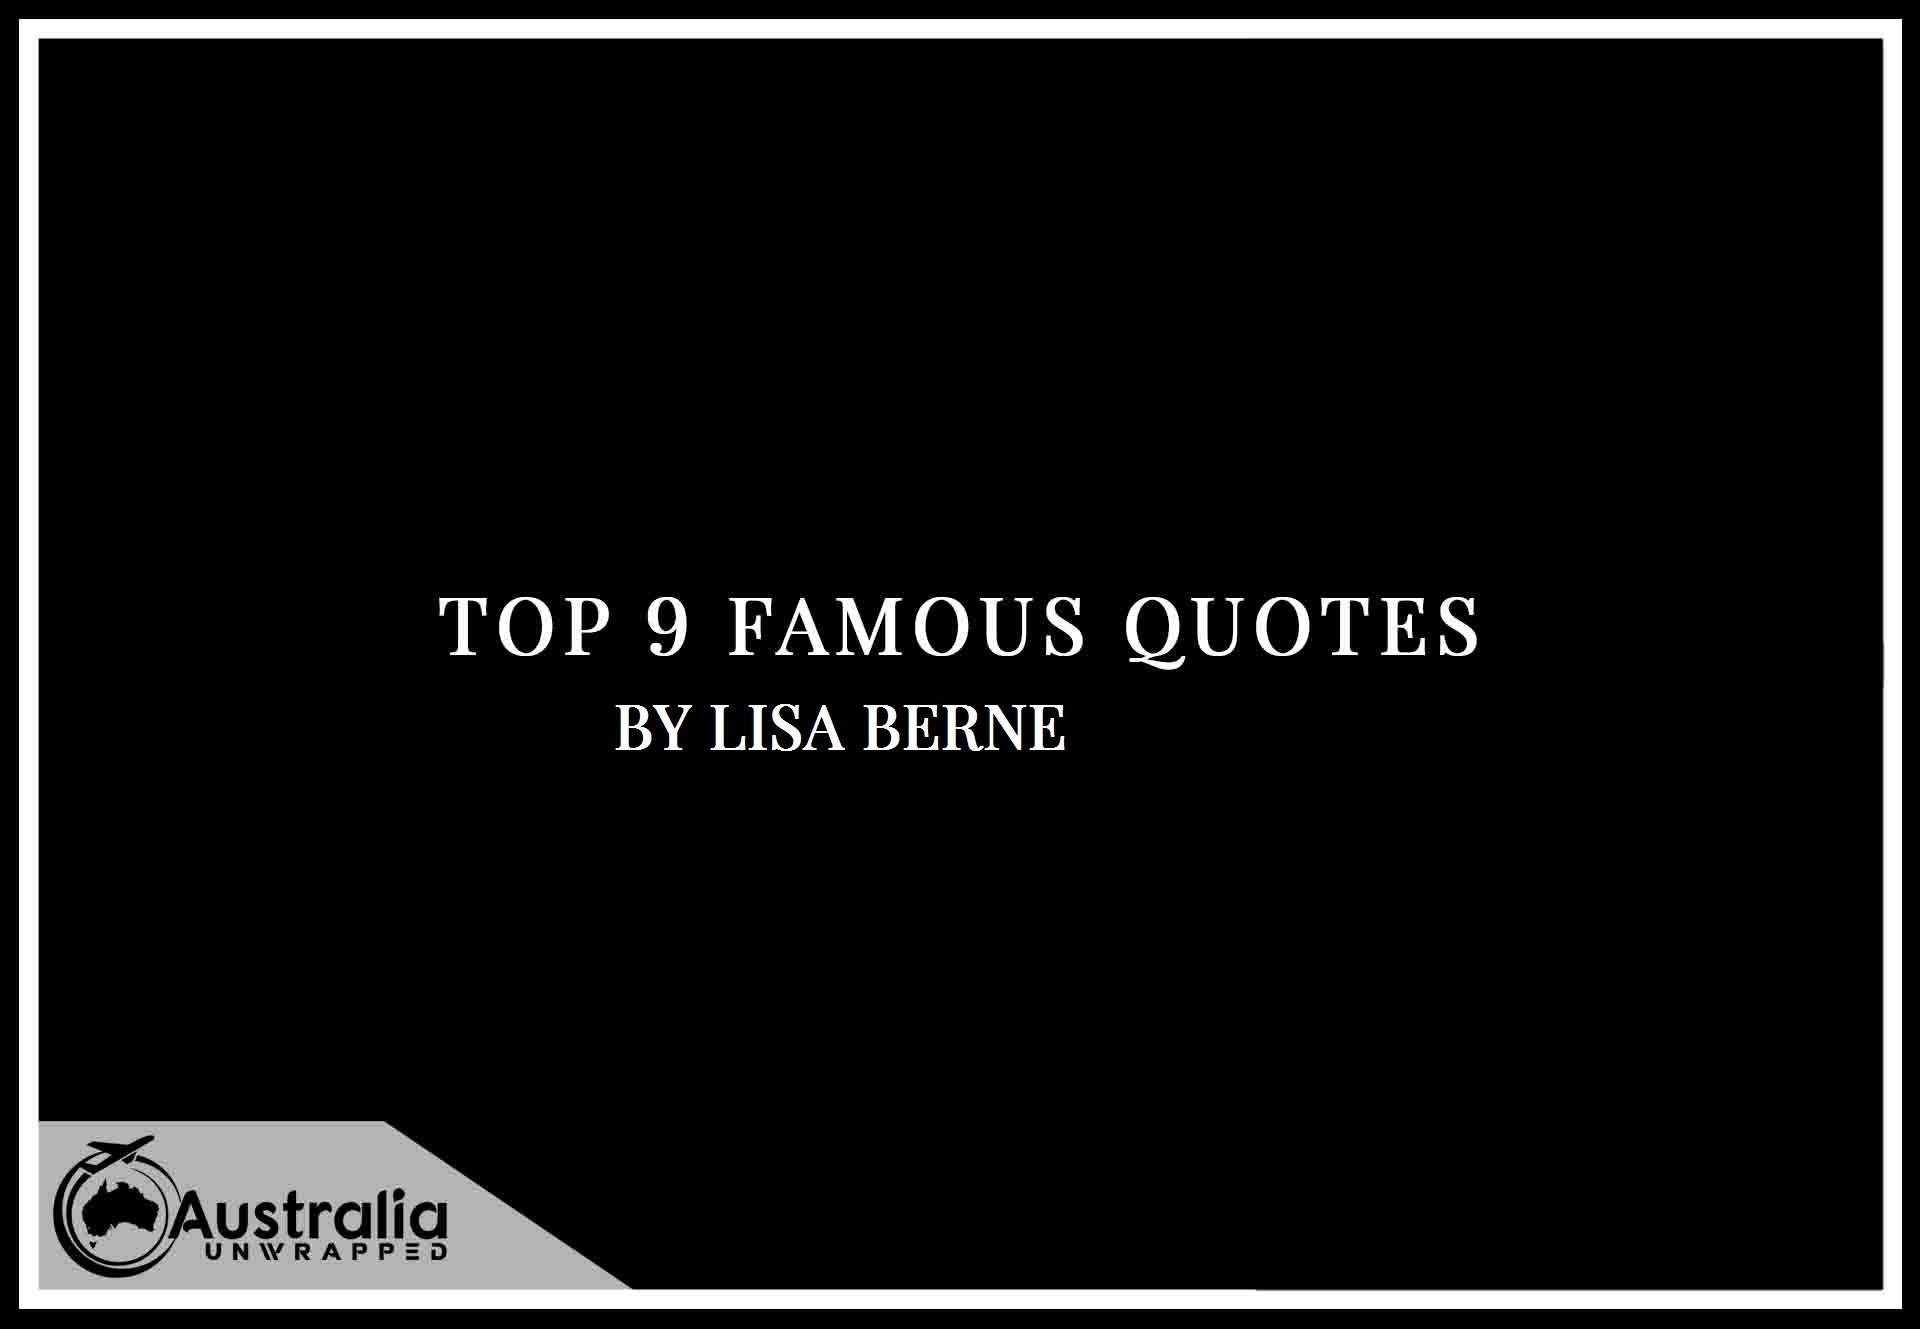 Lisa Berne's Top 9 Popular and Famous Quotes